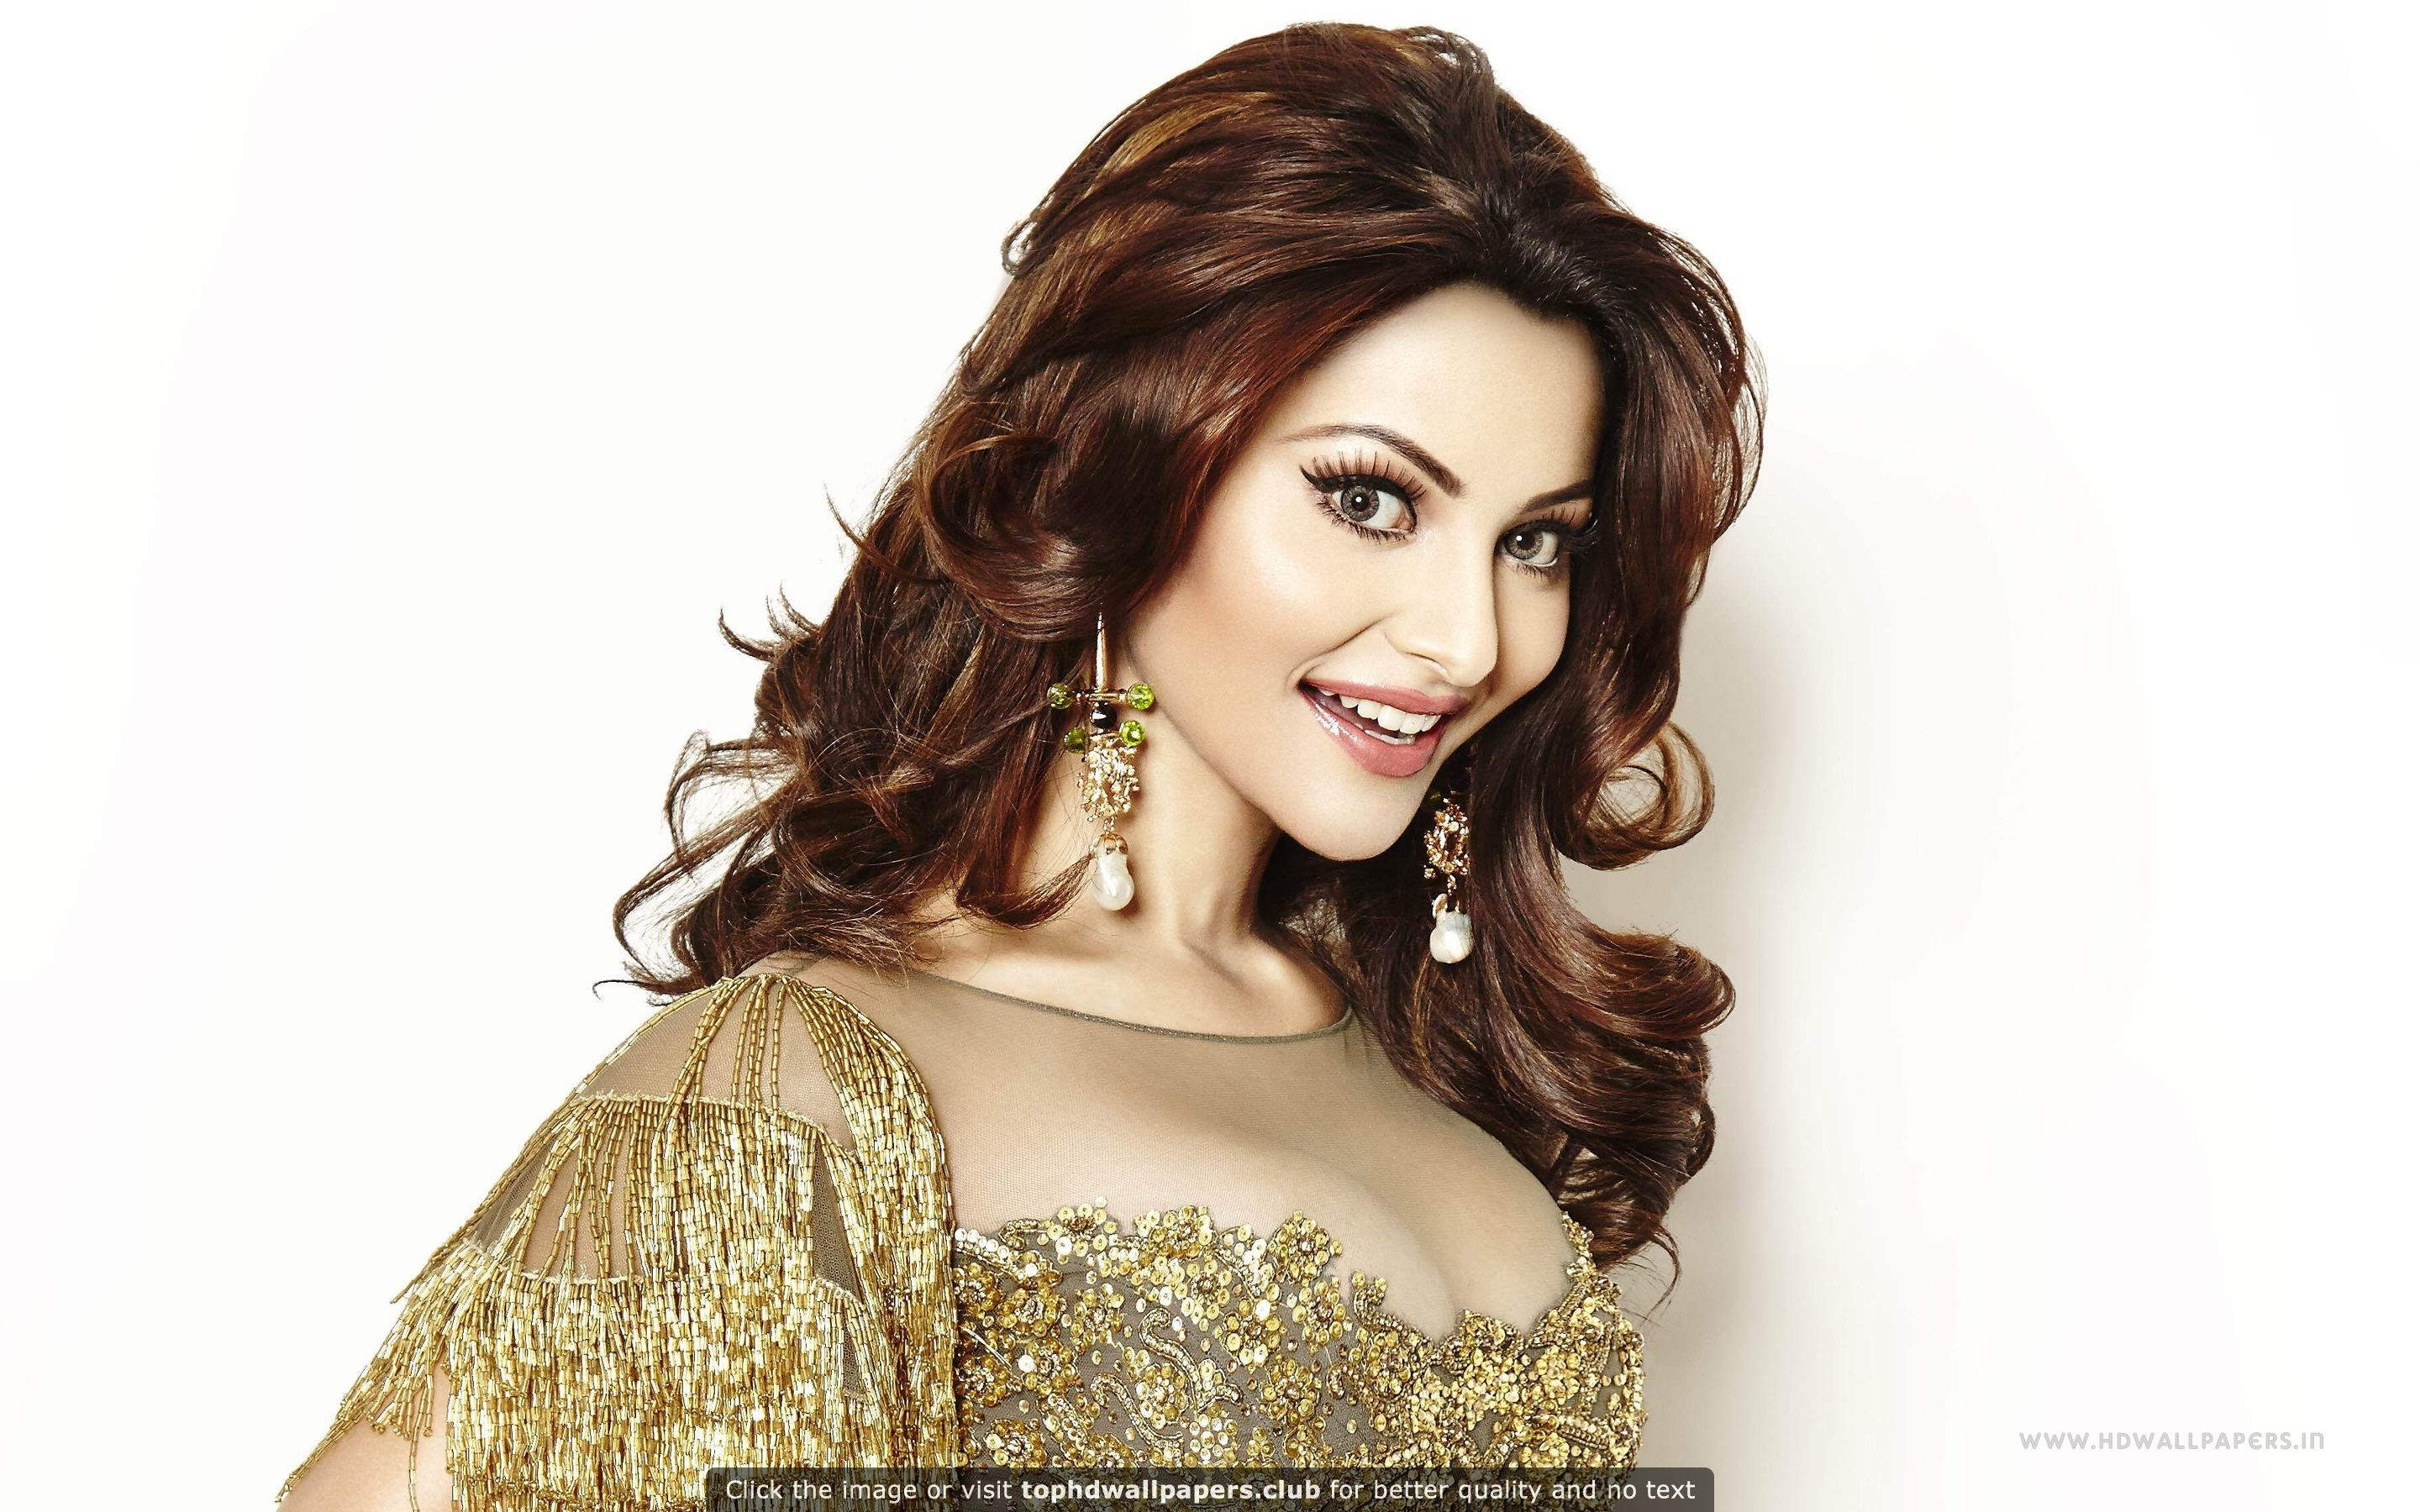 Actress urvashi rautela 4k or hd wallpaper for your pc - Actress wallpaper download for mobile ...